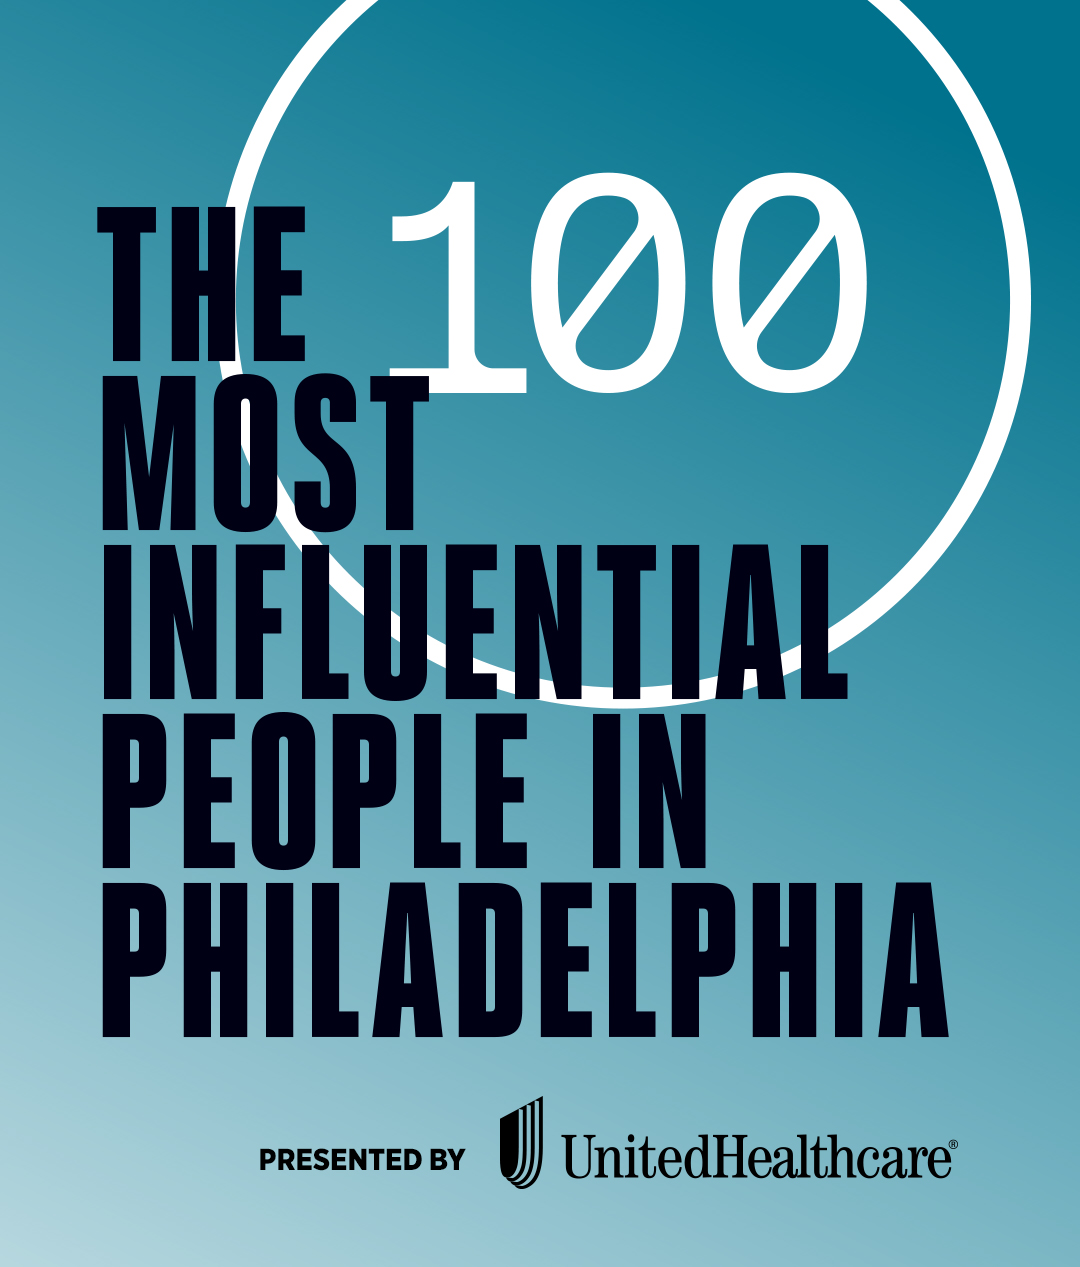 What's fascinating about compiling a list of the most influential people in  Philadelphia is that there's really no way to quantify influence.